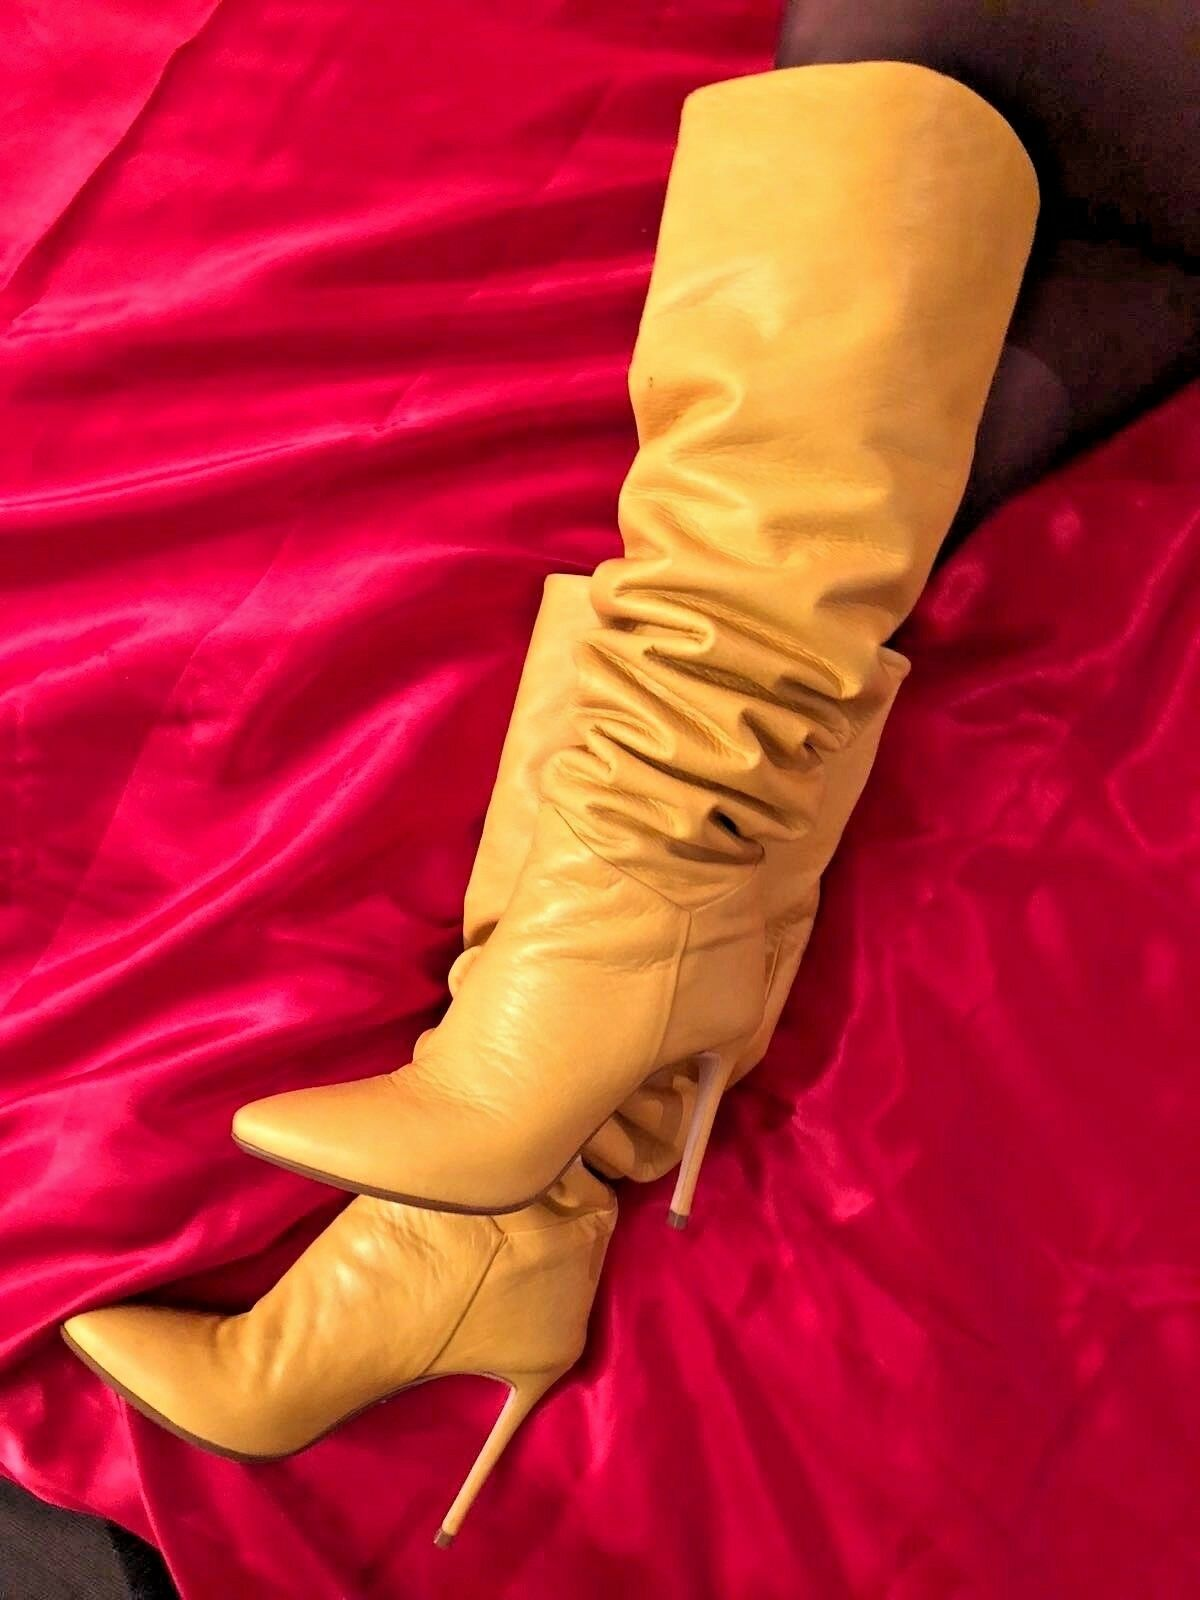 Grandes zapatos con descuento CQ COUTURE ITALY CUSTOM OVERKNEE BOOTS STIEFEL STIVALI LEATHER YELLOW GIALLO 37